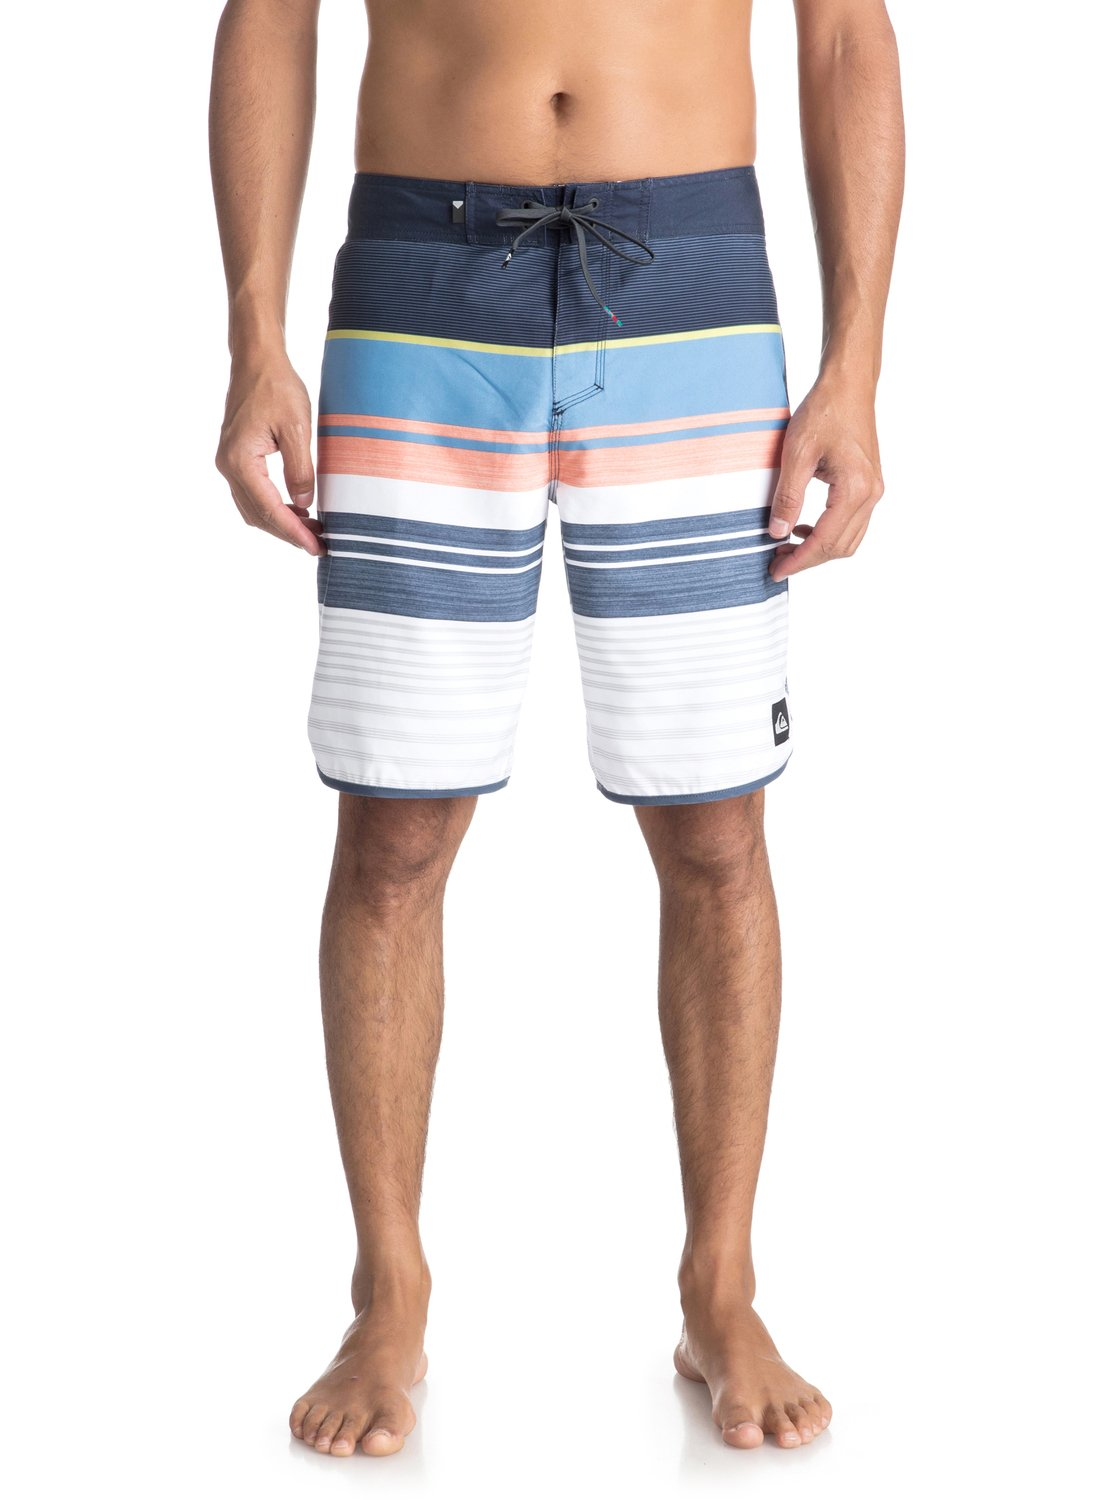 ZSYQG Mens Swim Board Shorts Solid Board Drawstring Elastic Waist Gym Shorts